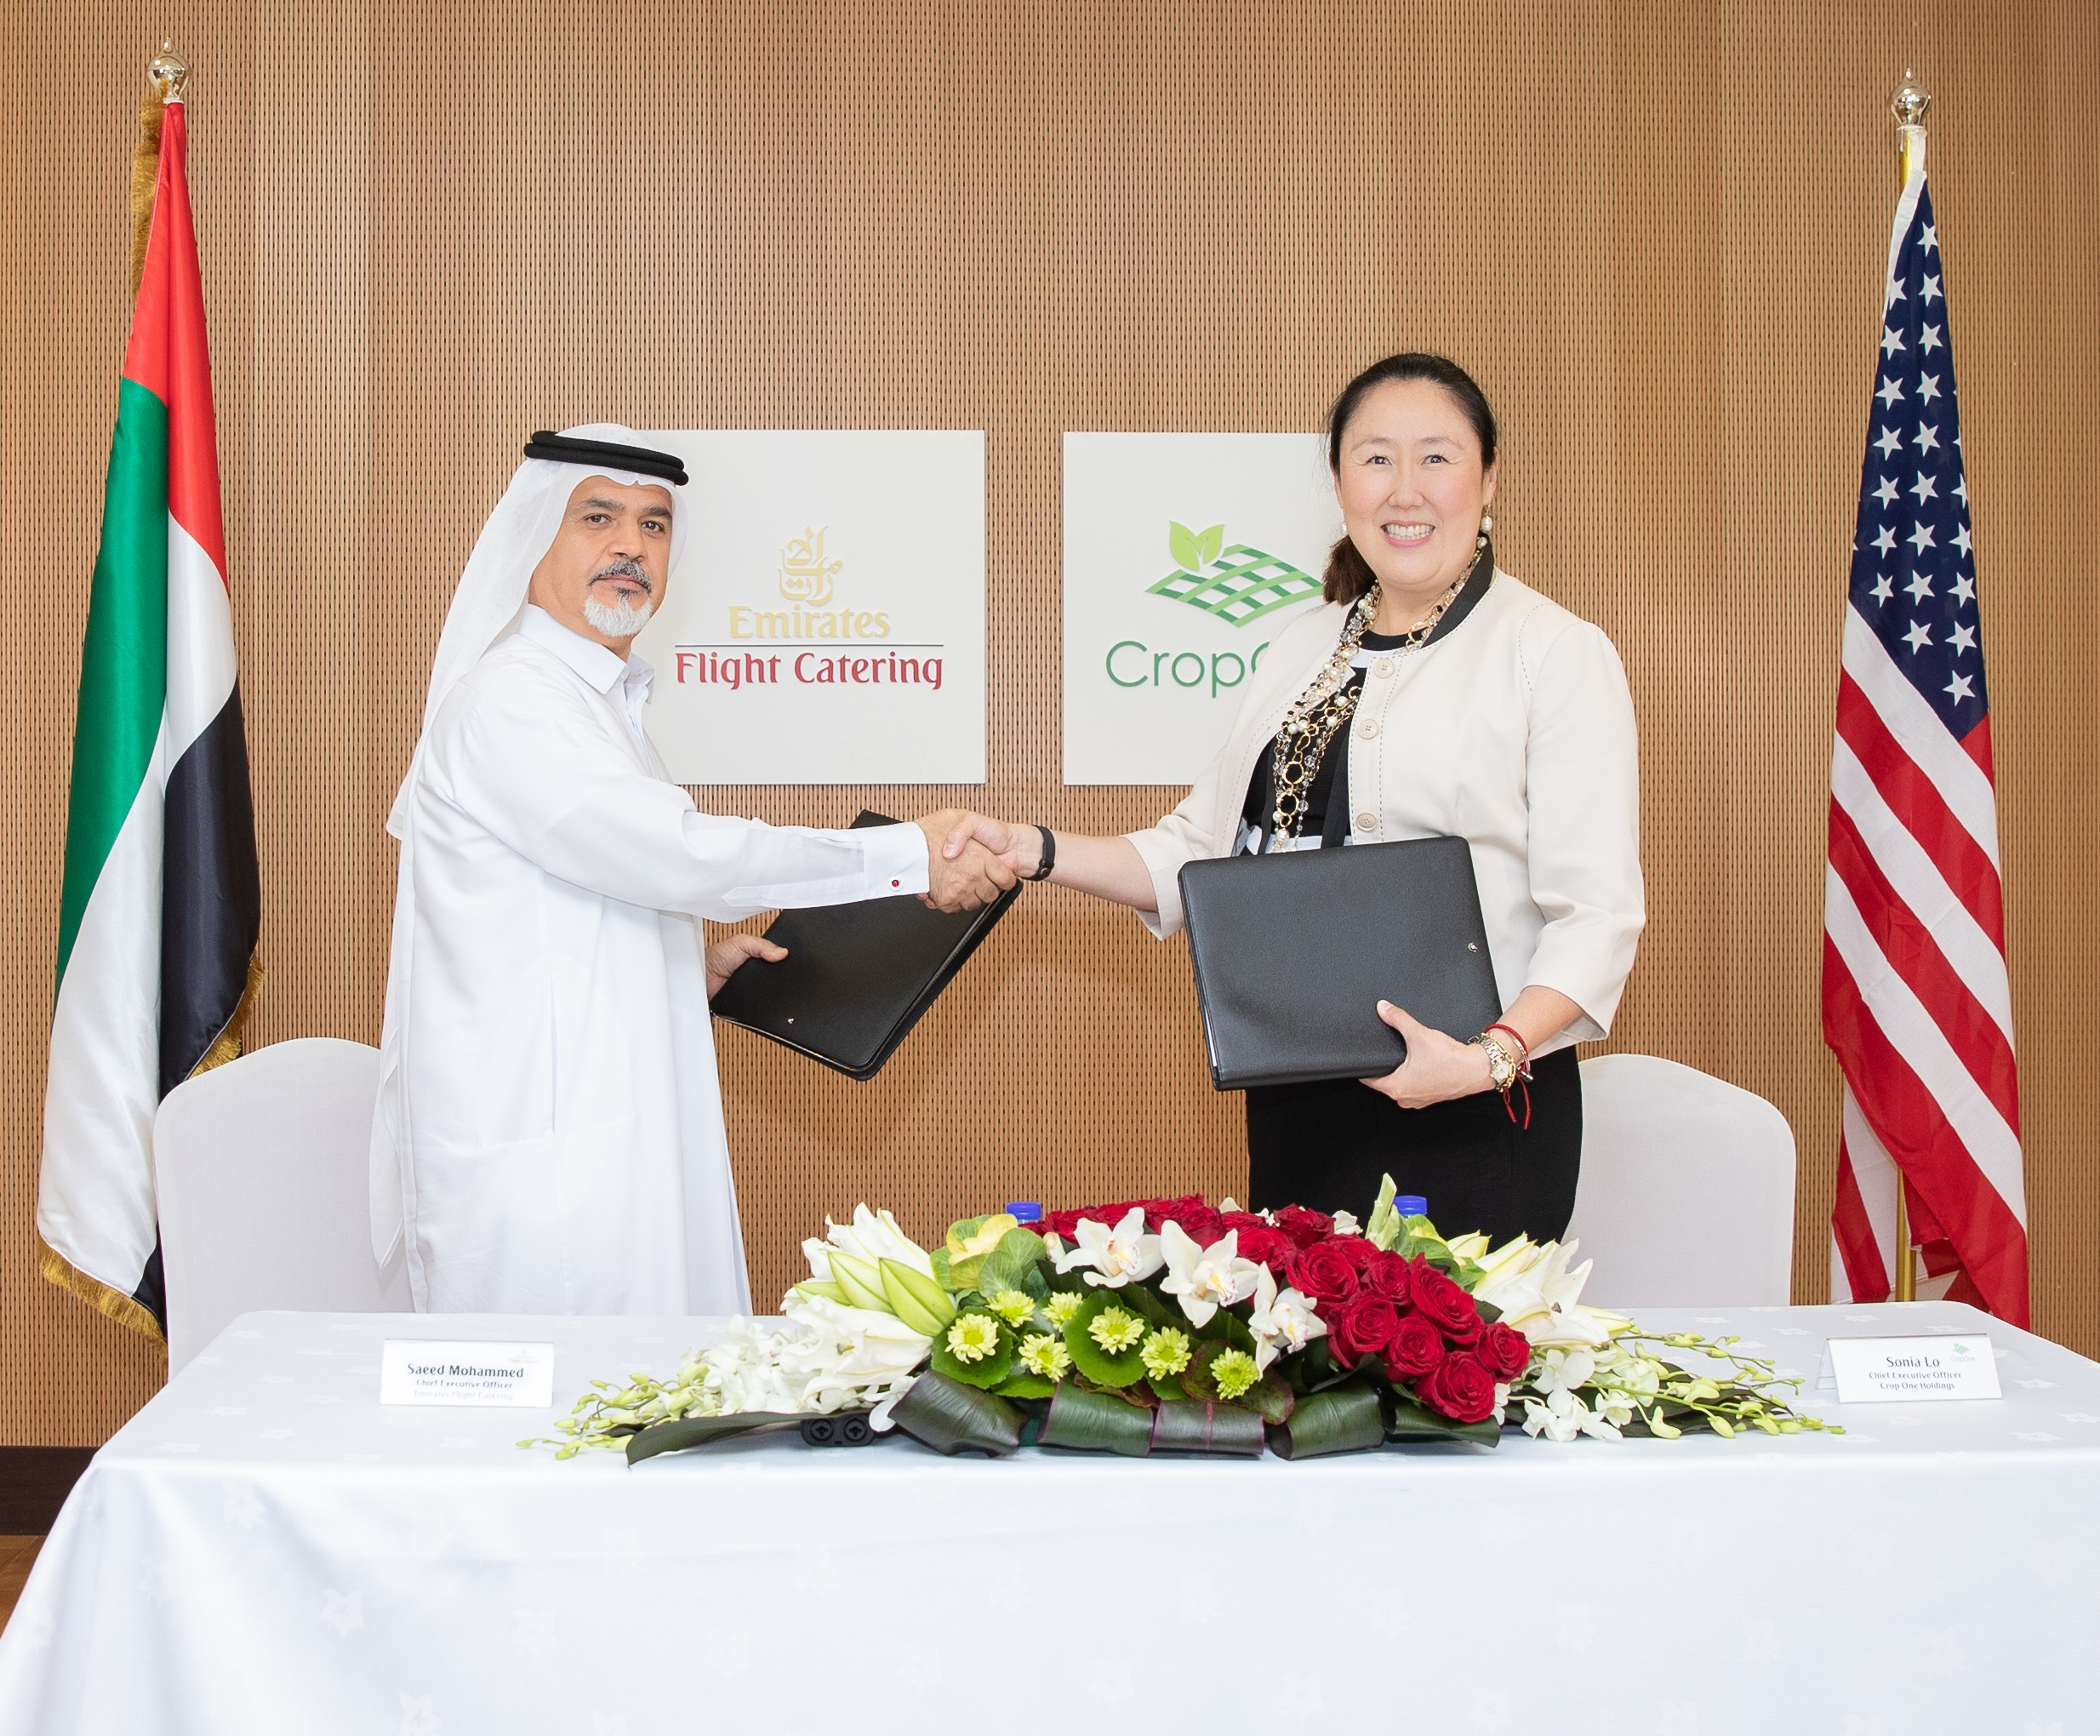 (from left to right) Saeed Mohammed, Chief Executive Officer of Emirates Flight Catering, and Sonia Lo, Chief Executive Officer of Crop One Holdings, after signing the joint venture agreement